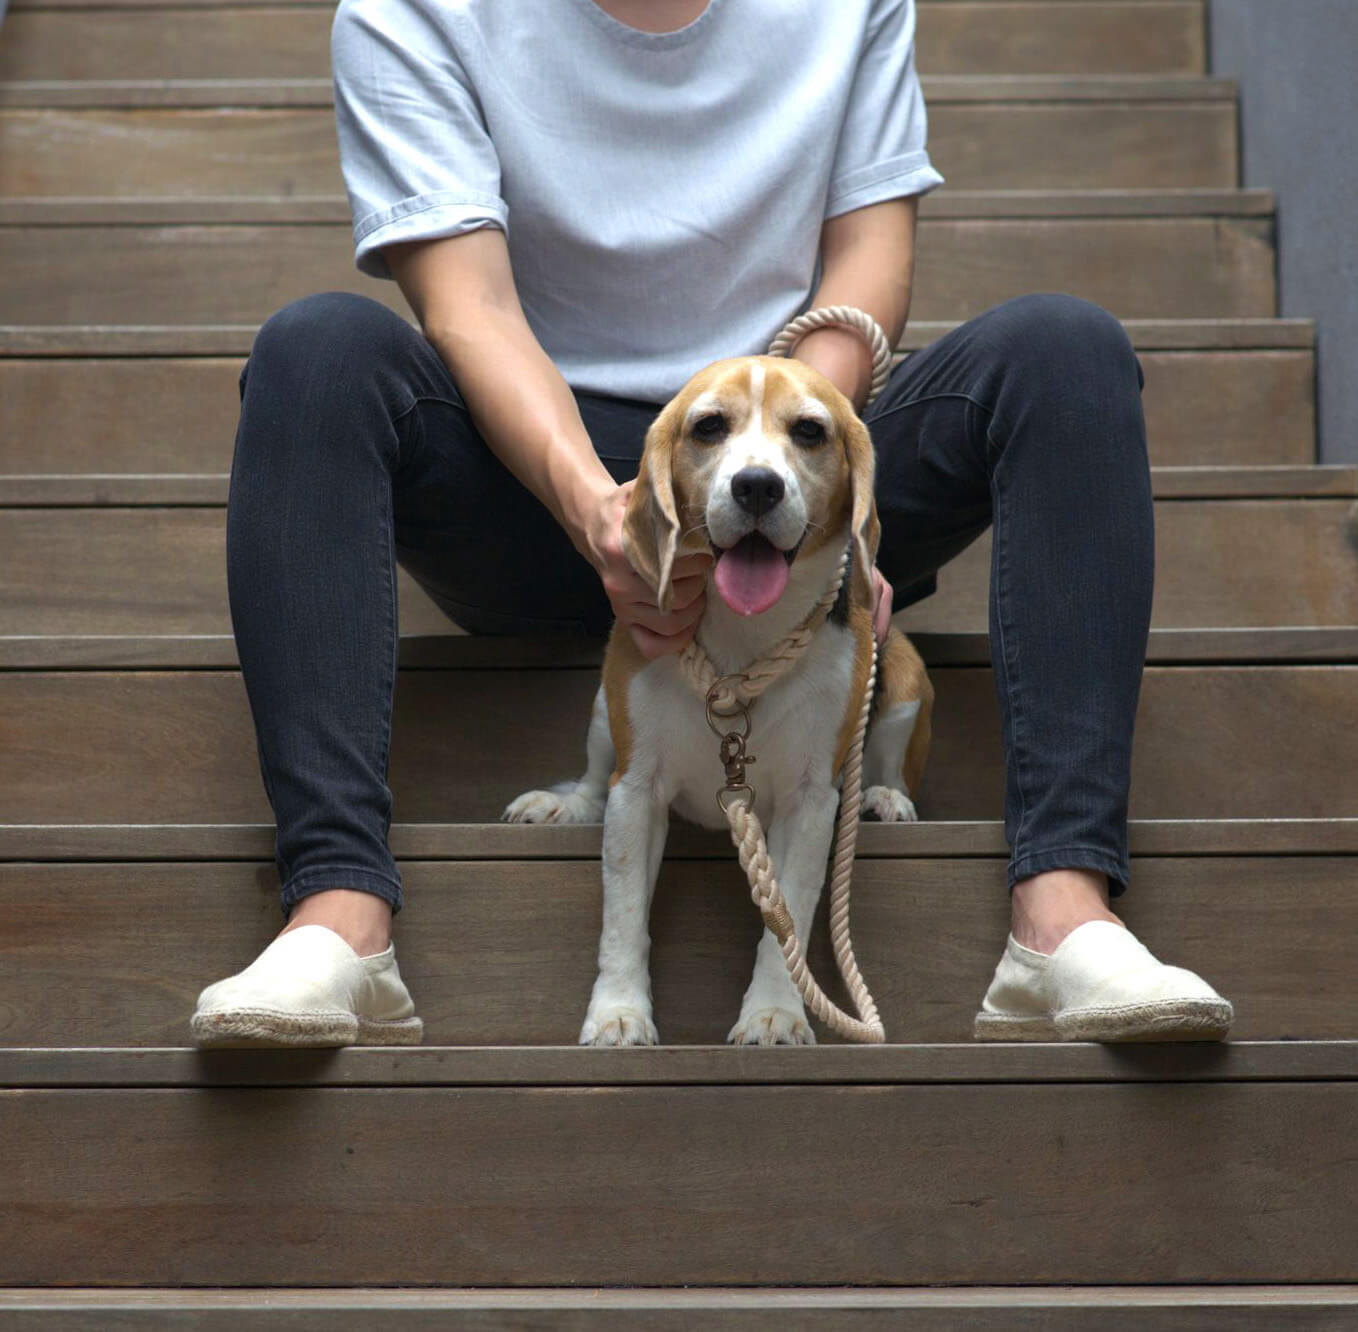 Cherishing character with Urban Monster's dog accessories